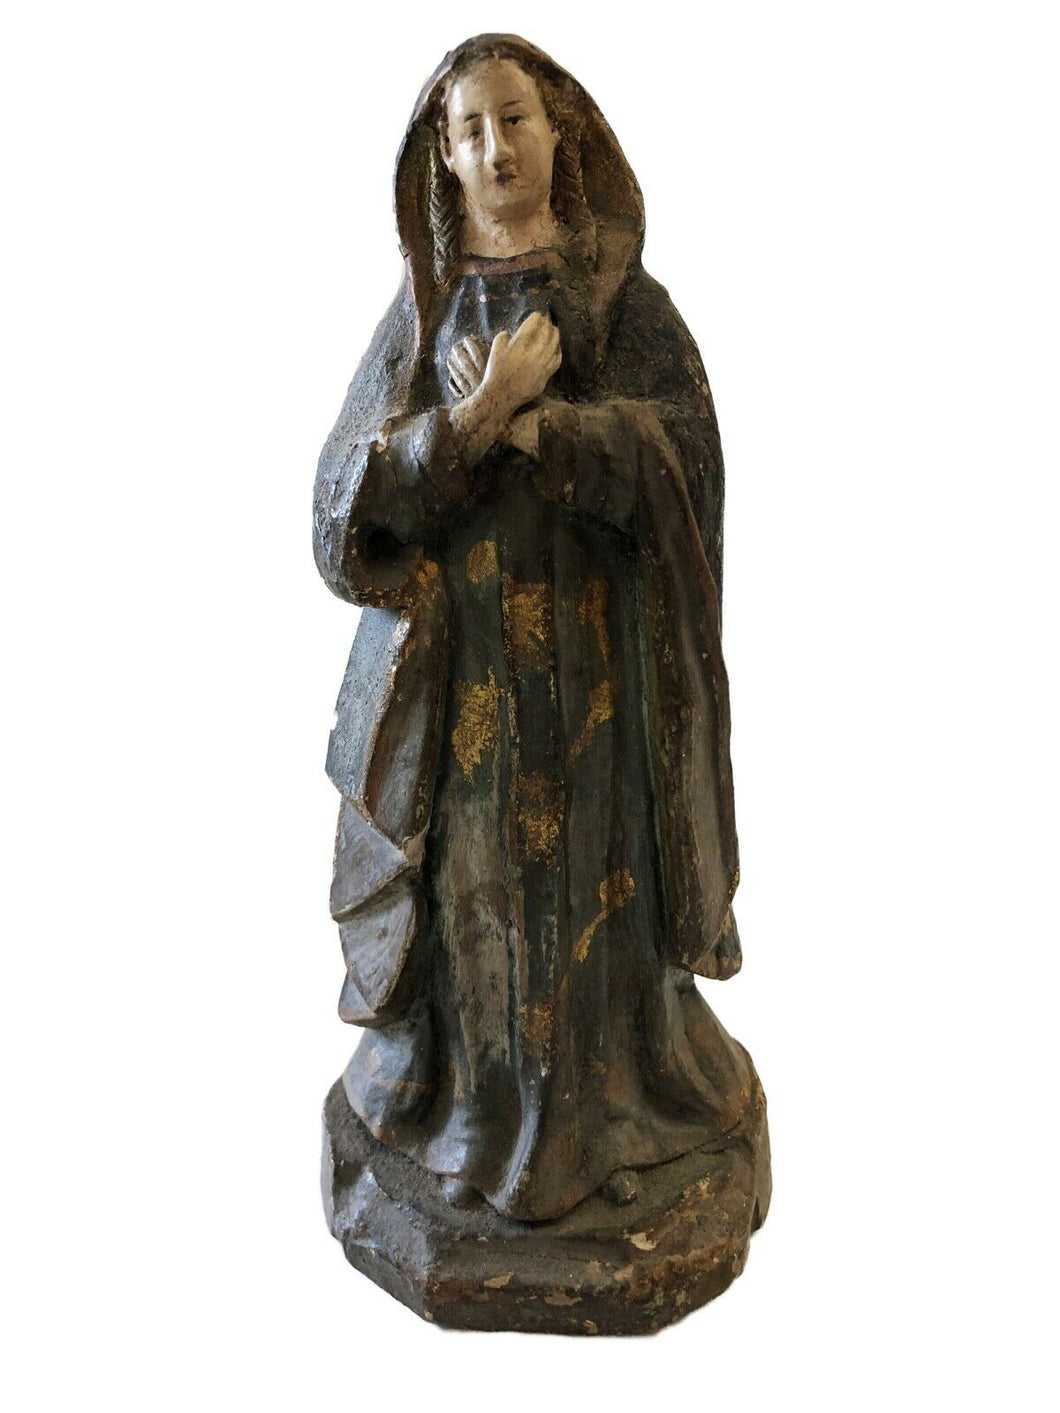 Rare 19th Century Terra-Cotta Figure of a Saint Philomena 7